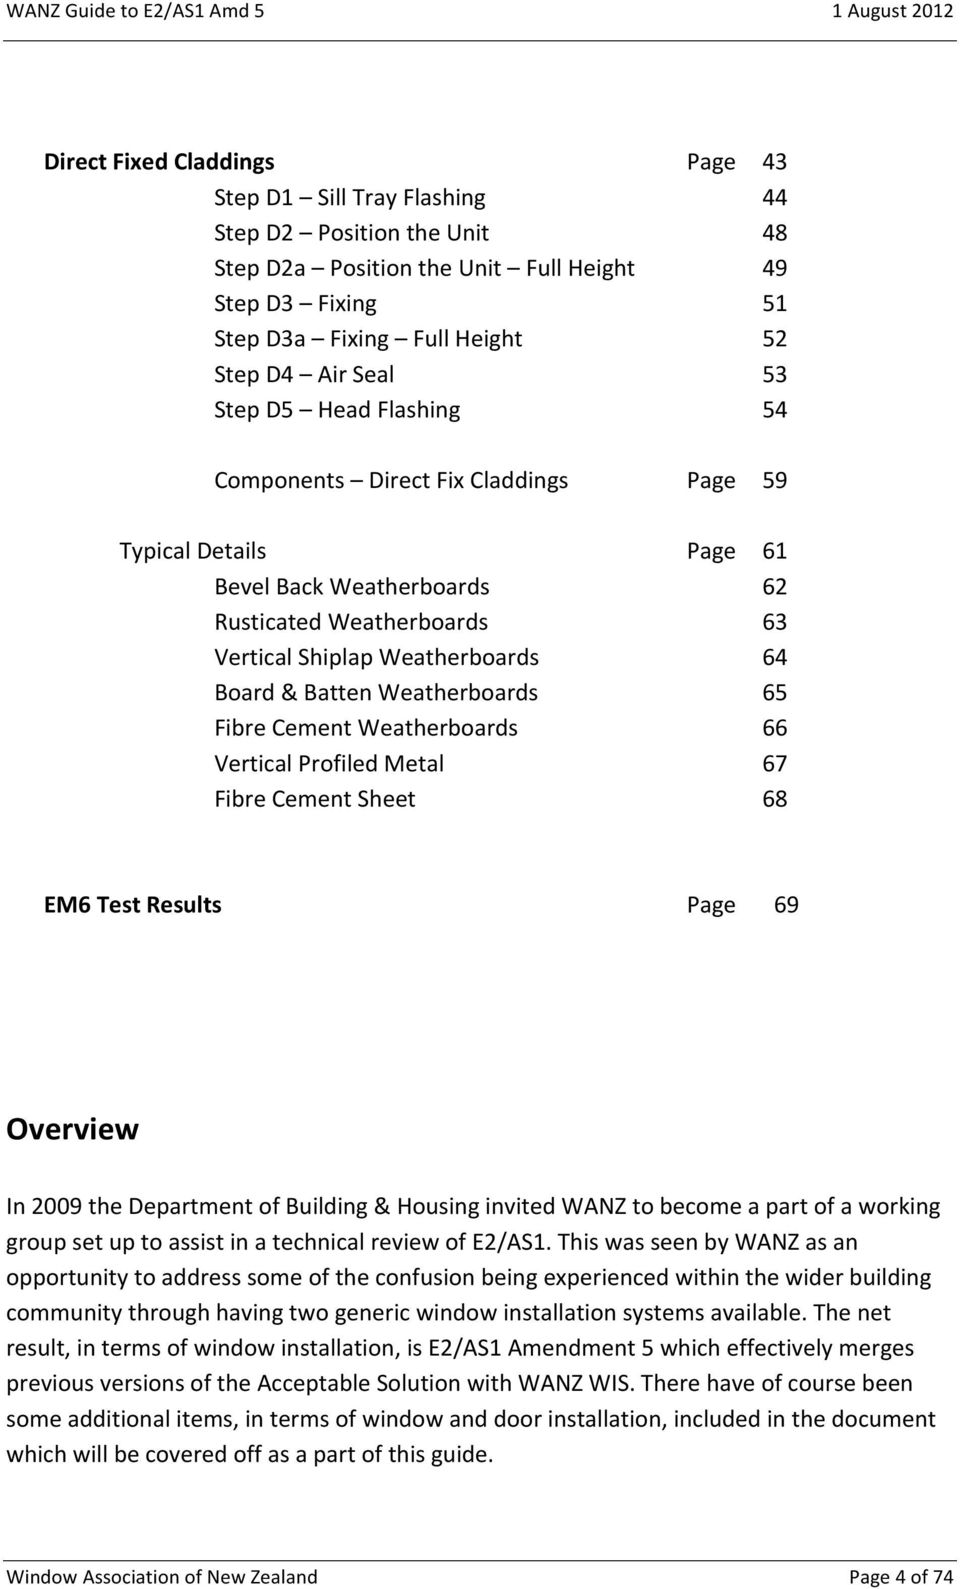 Weatherboards 65 Fibre Cement Weatherboards 66 Vertical Profiled Metal 67 Fibre Cement Sheet 68 EM6 Test Results Page 69 Overview In 2009 the Department of Building & Housing invited WANZ to become a